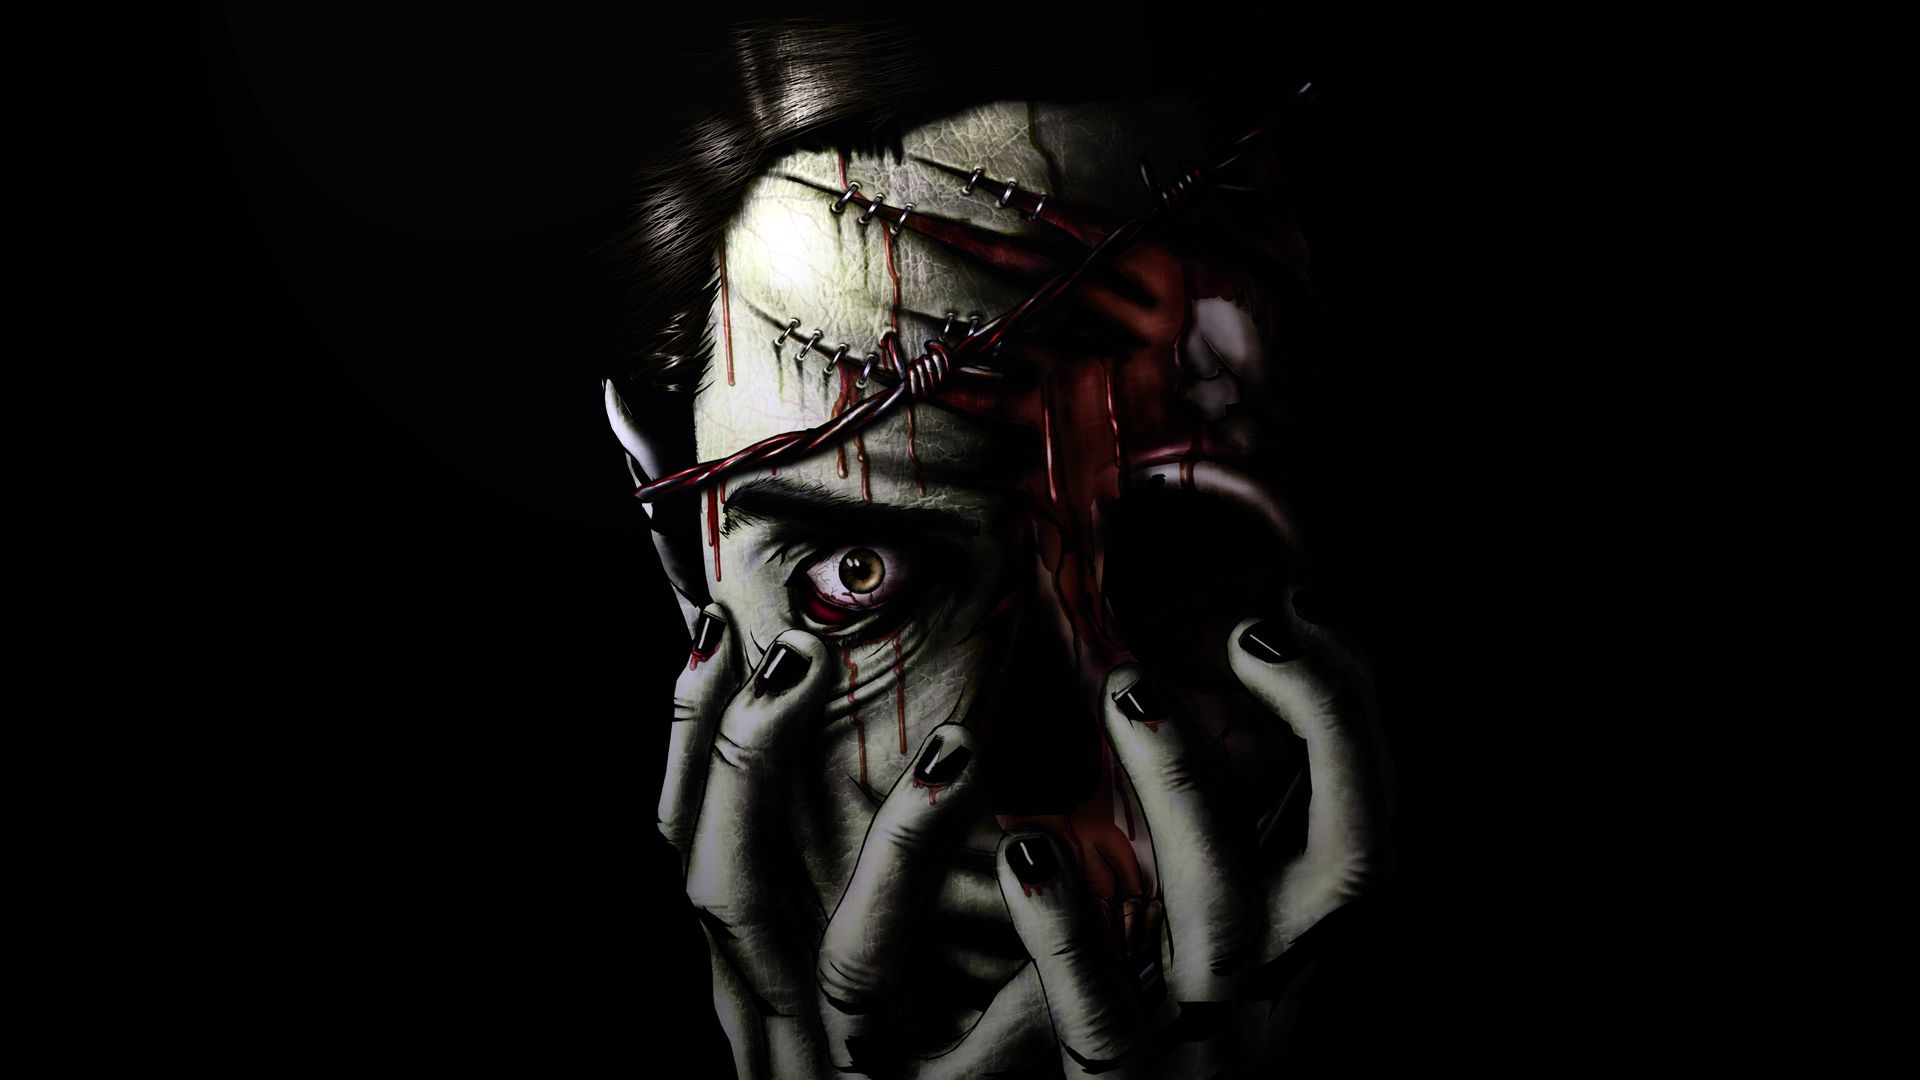 Scary Zombie Wallpapers And Backgrounds Zombie Wallpaper Just Pics